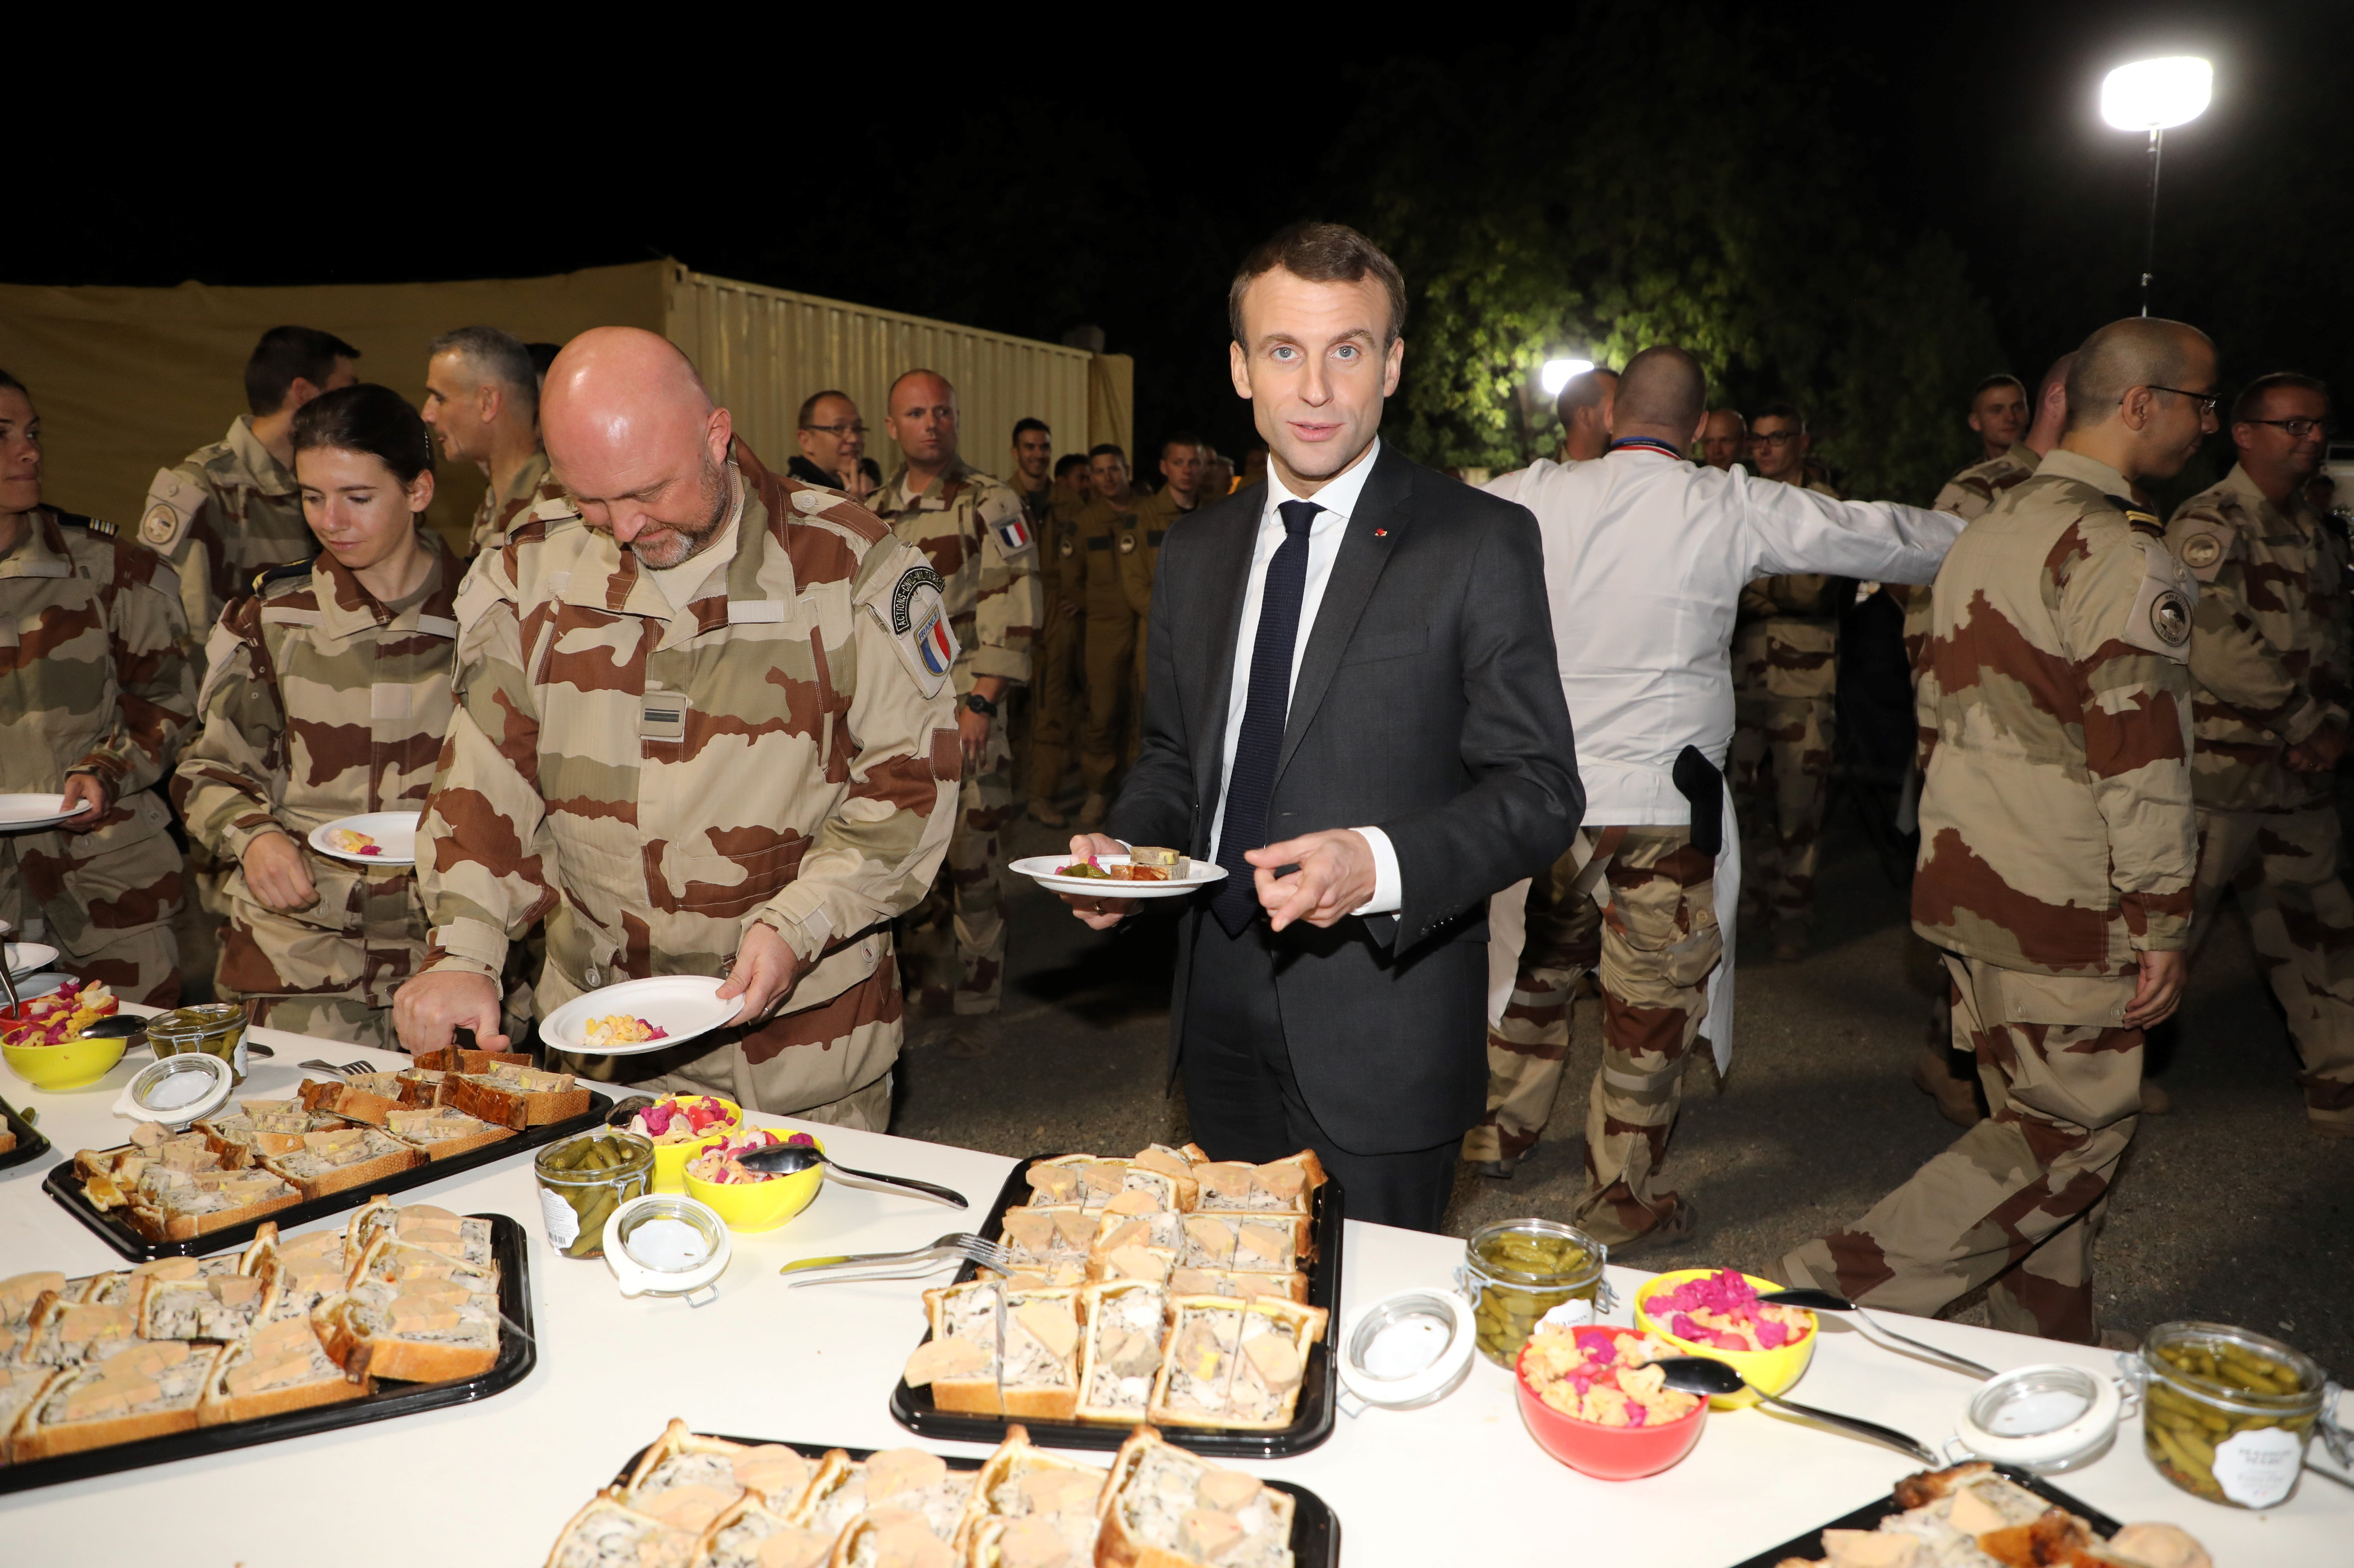 French president Emmanuel Macron eats dinner with soldiers the Barkhane force at the Barkhane tactical command centre in N'Djamena on December 22, 2018.